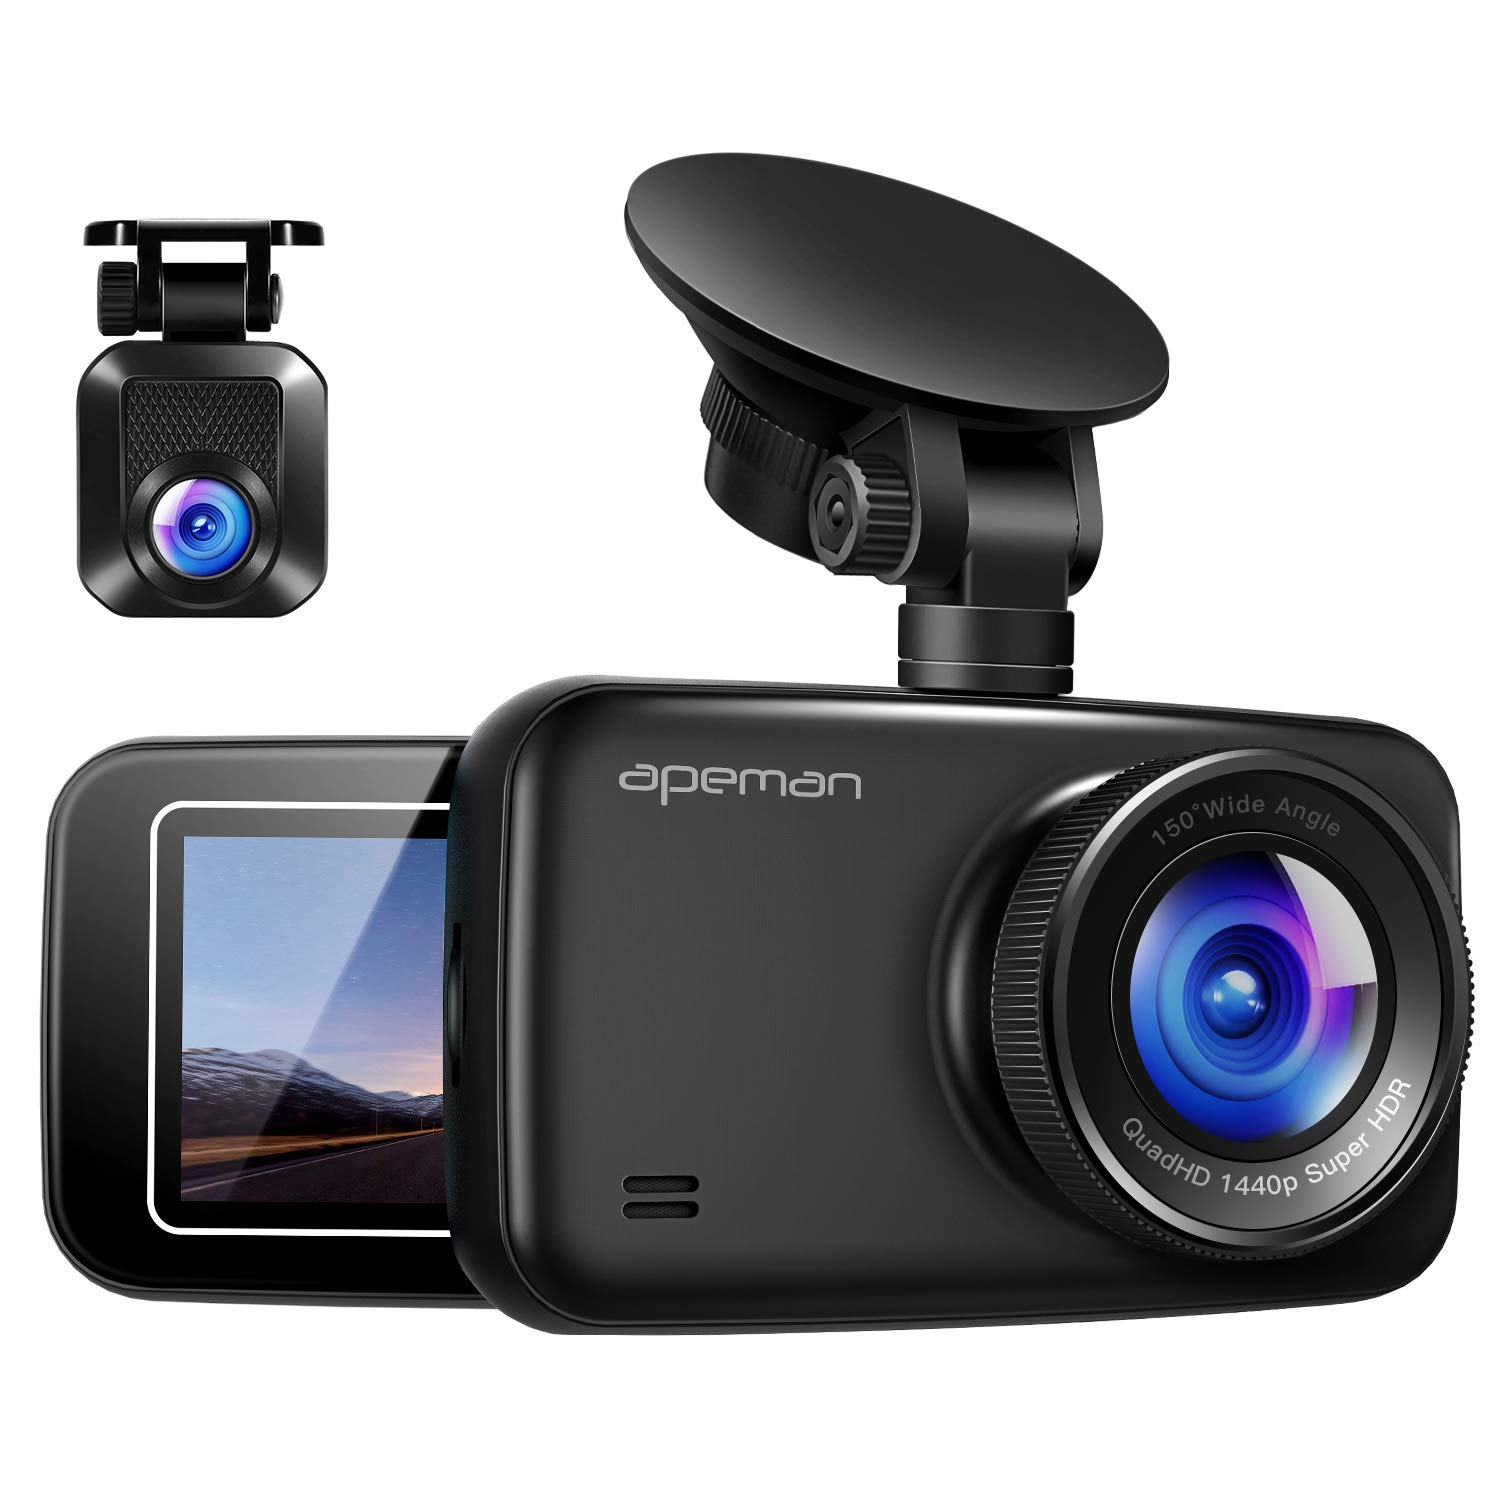 APEMAN 1440P&1080P Dual Dash Cam FHD Front and Rear Camera for Cars, Support 128GB max, Driving Recorder with IR Sensor Night Vision, Motion Detection, G-Sensor, Parking Monitor by APEMAN